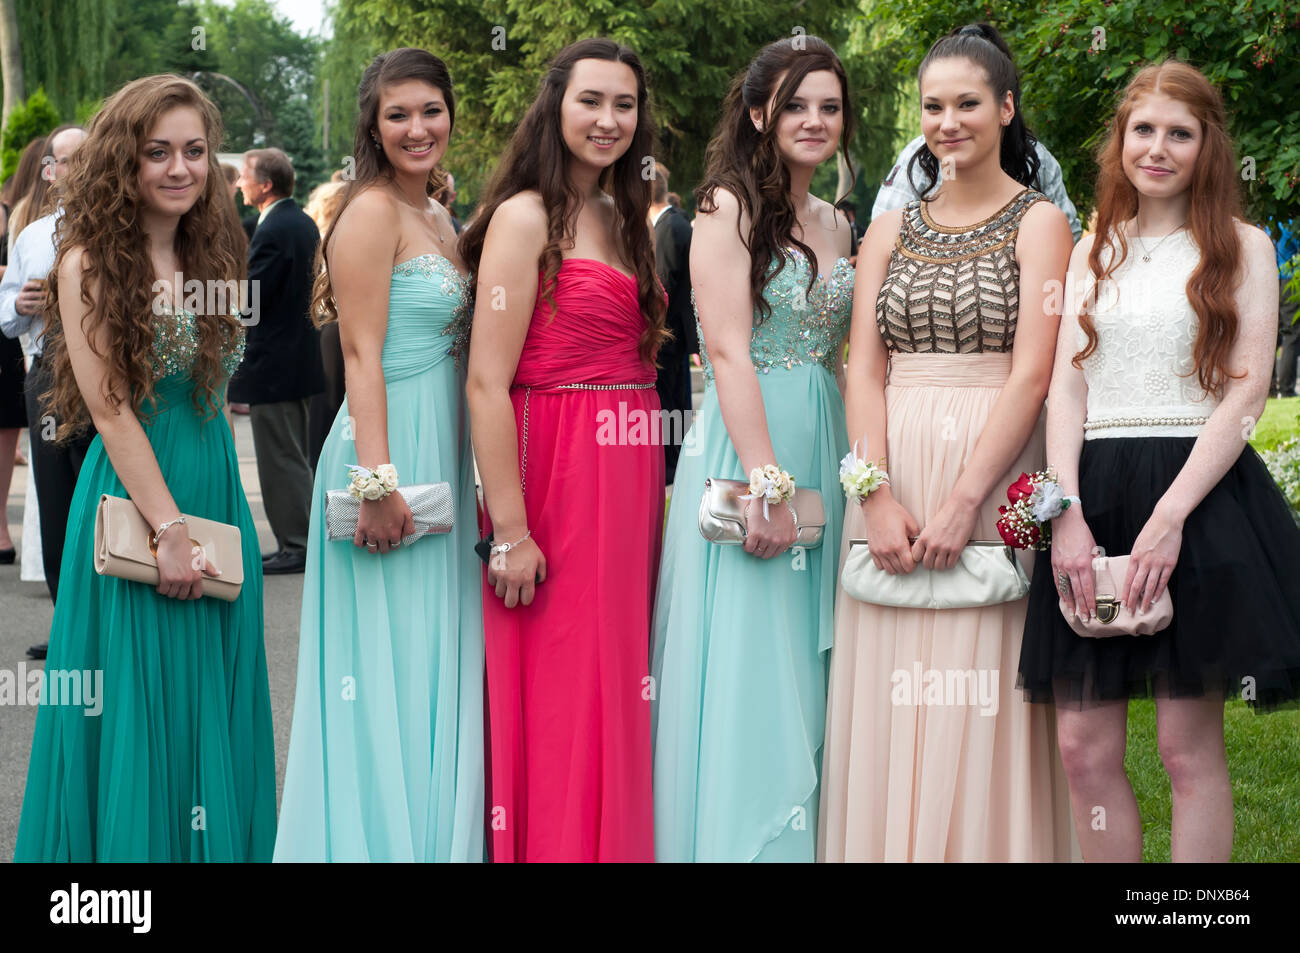 School Prom Night